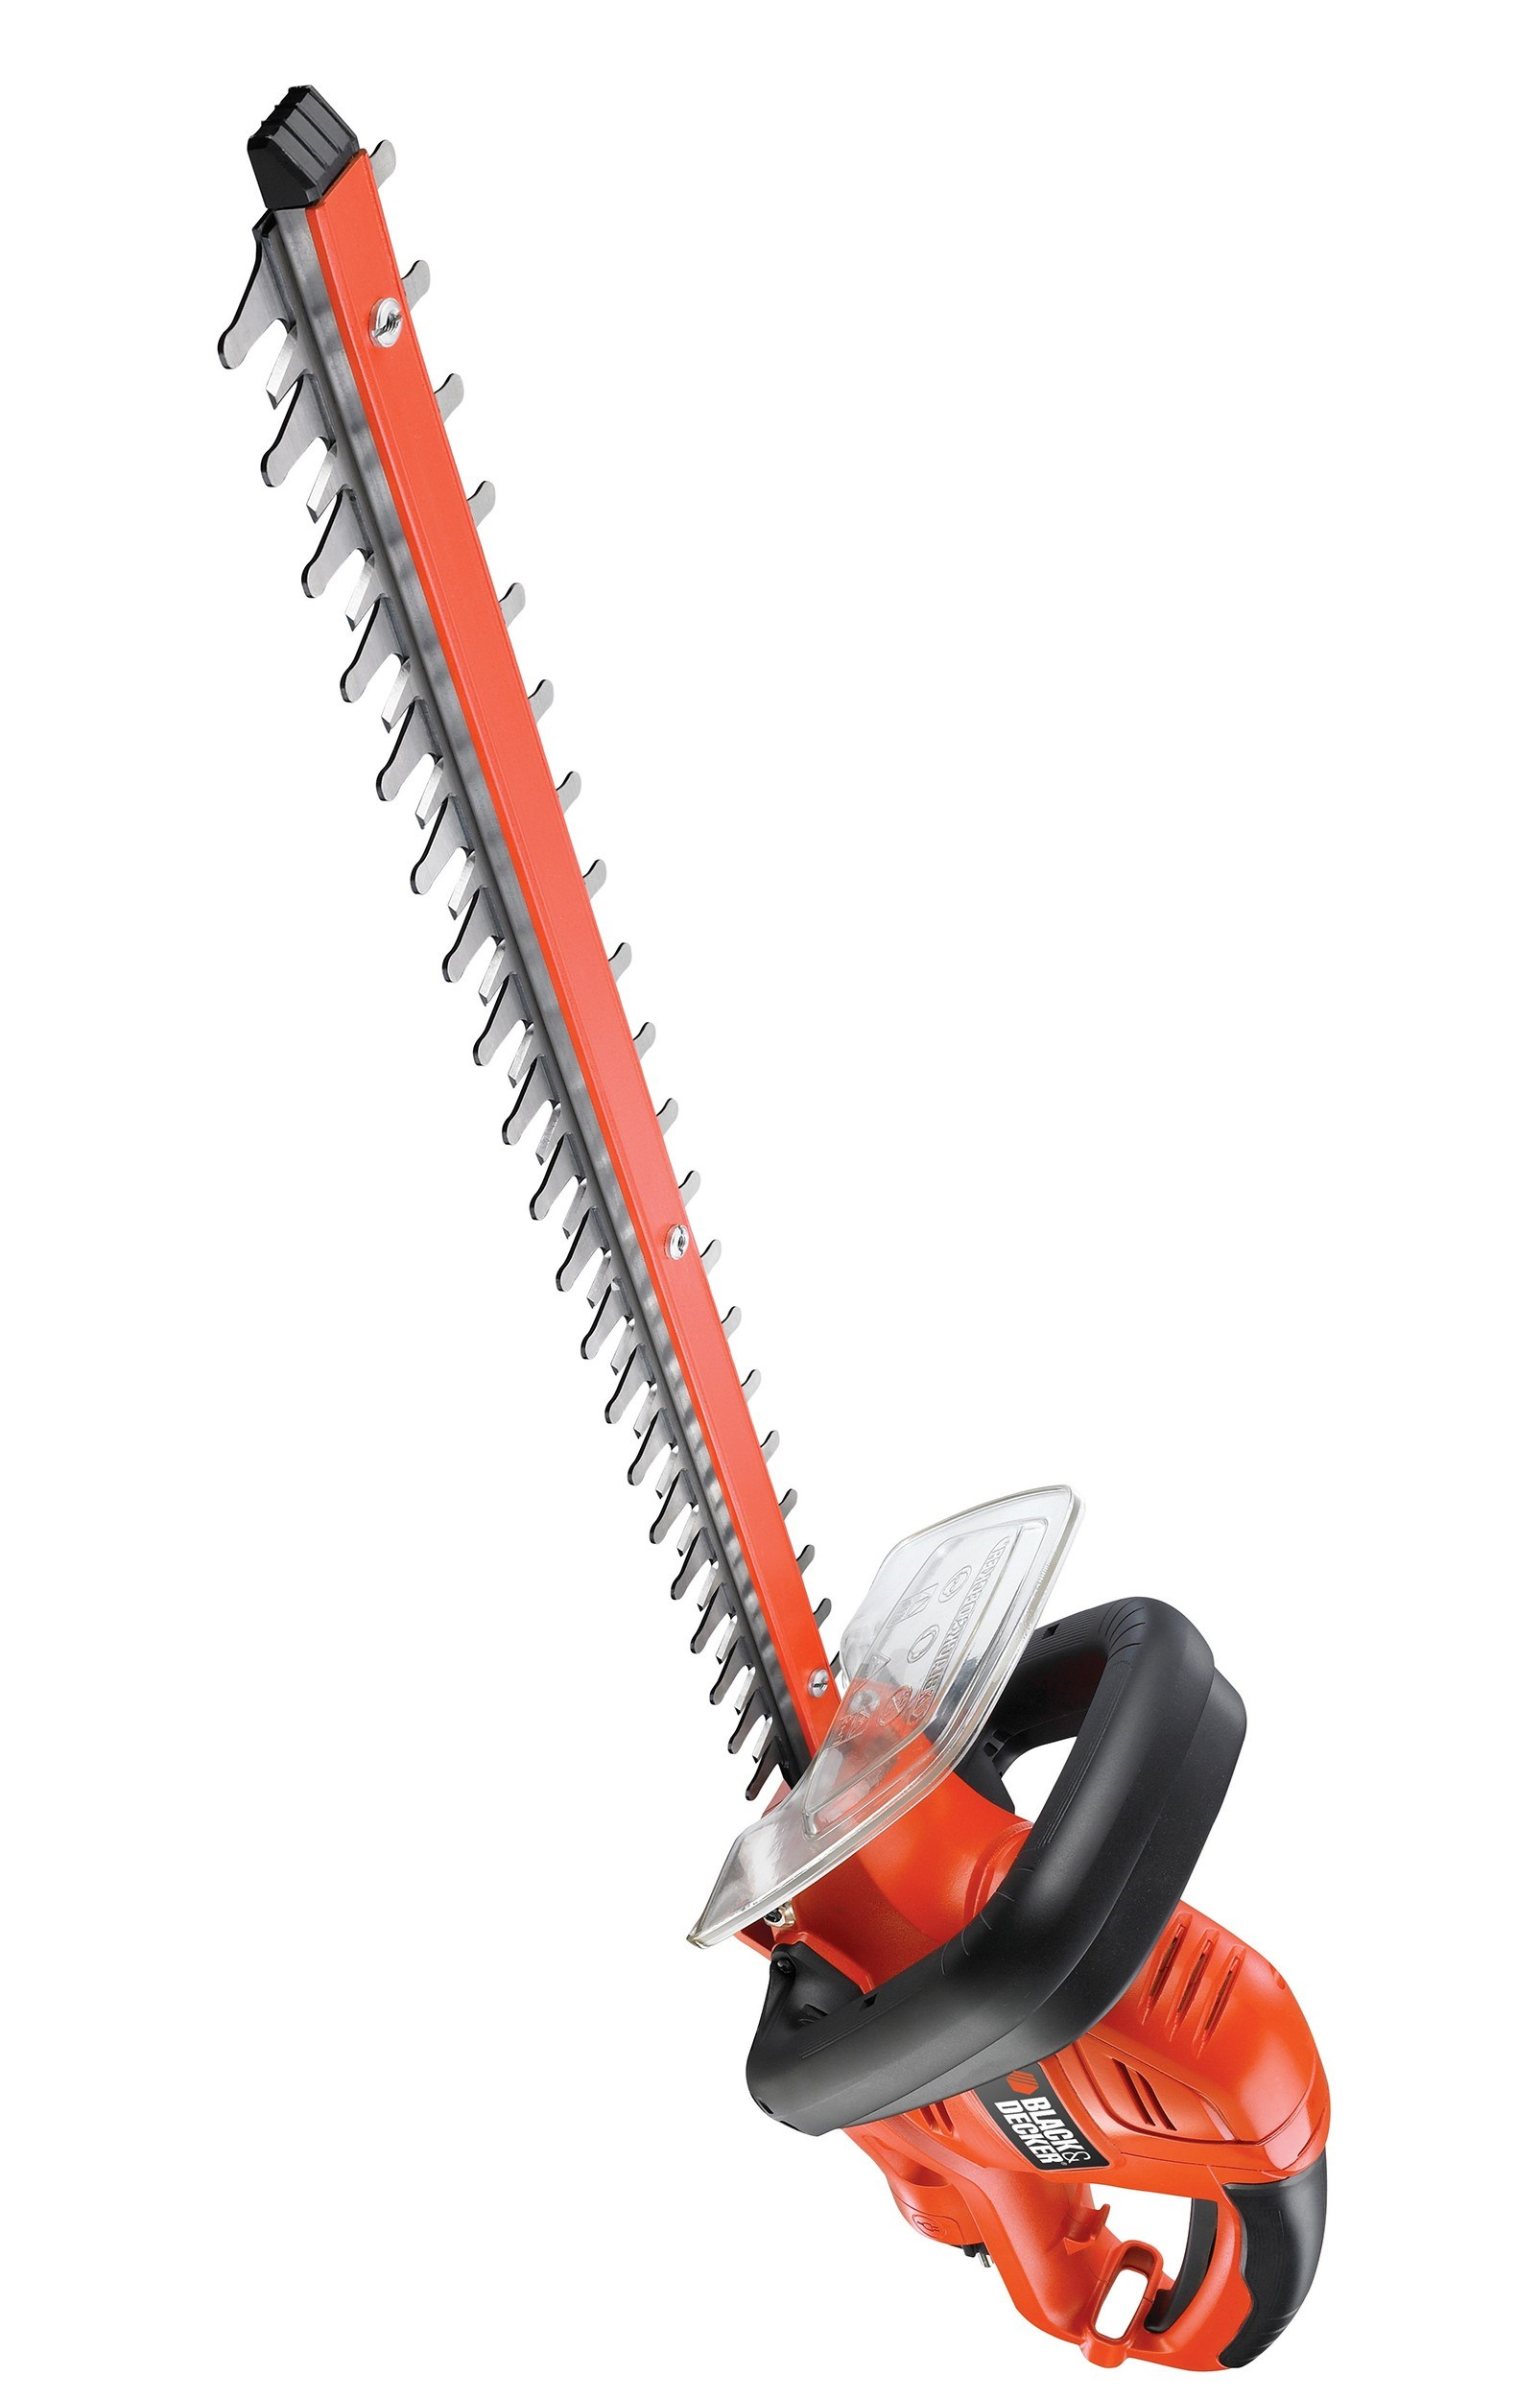 Black & Decker  GT5050 Hedge Trimmer